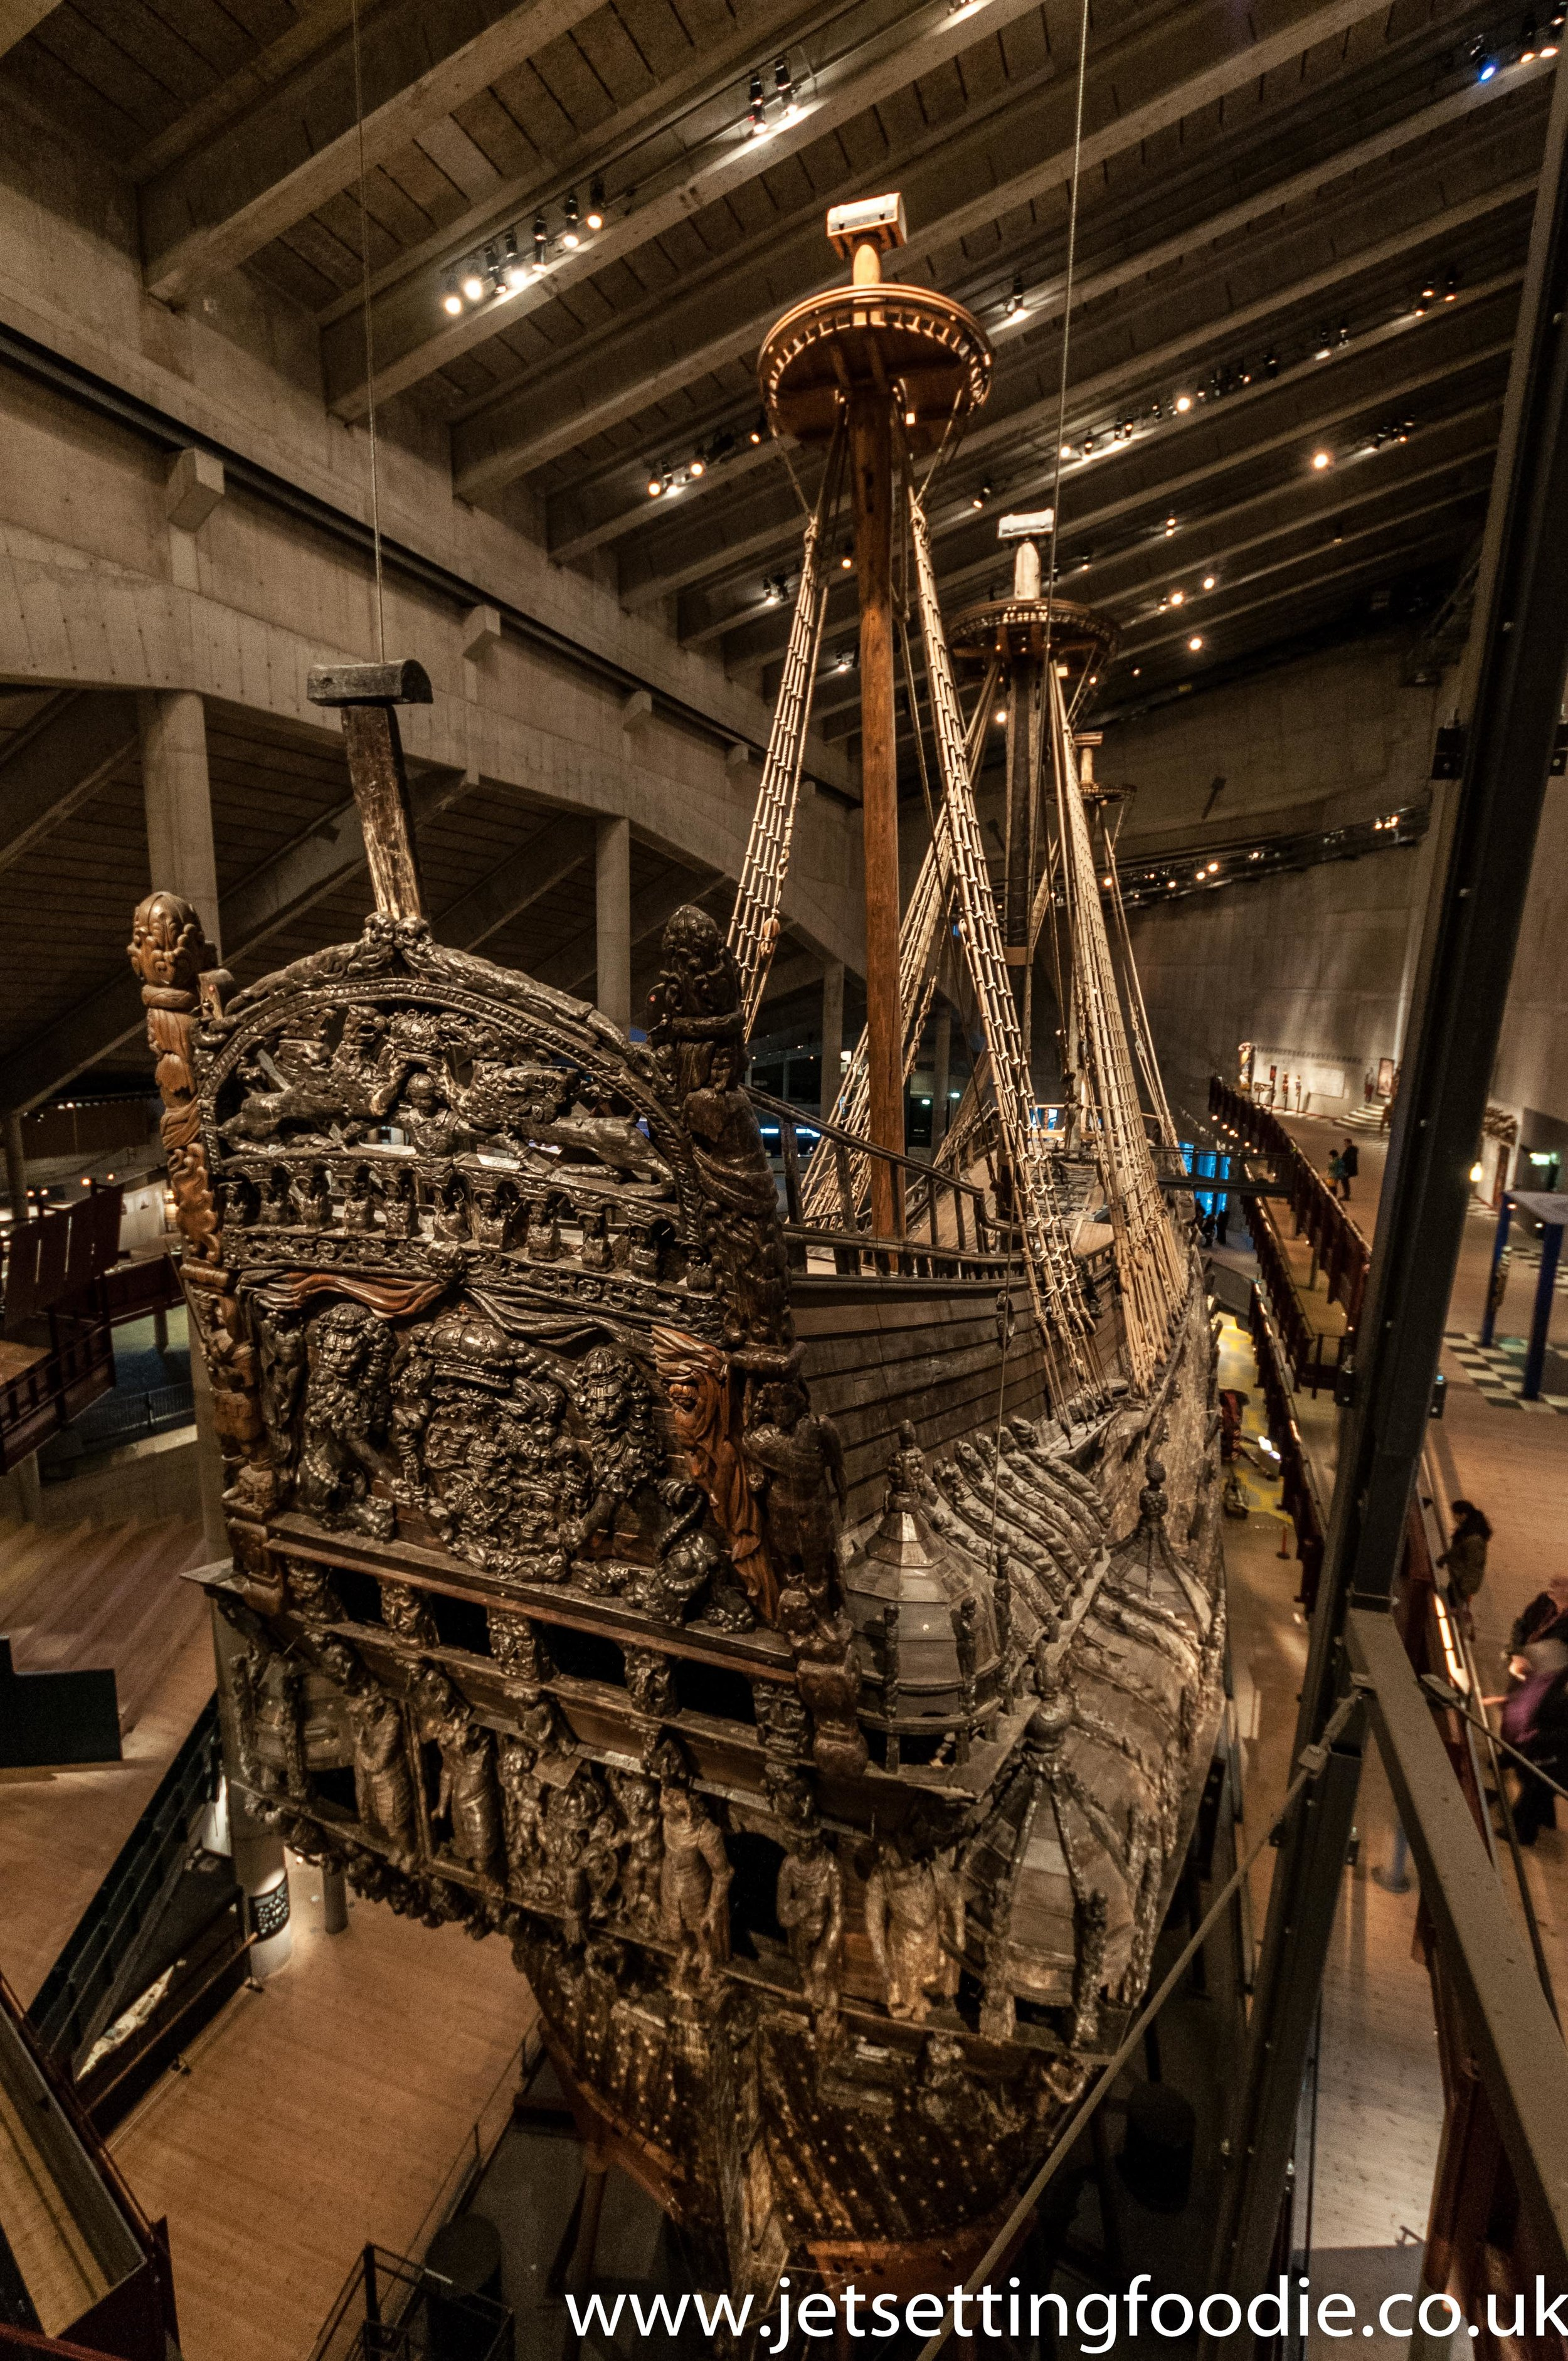 The Vasa from another angle...